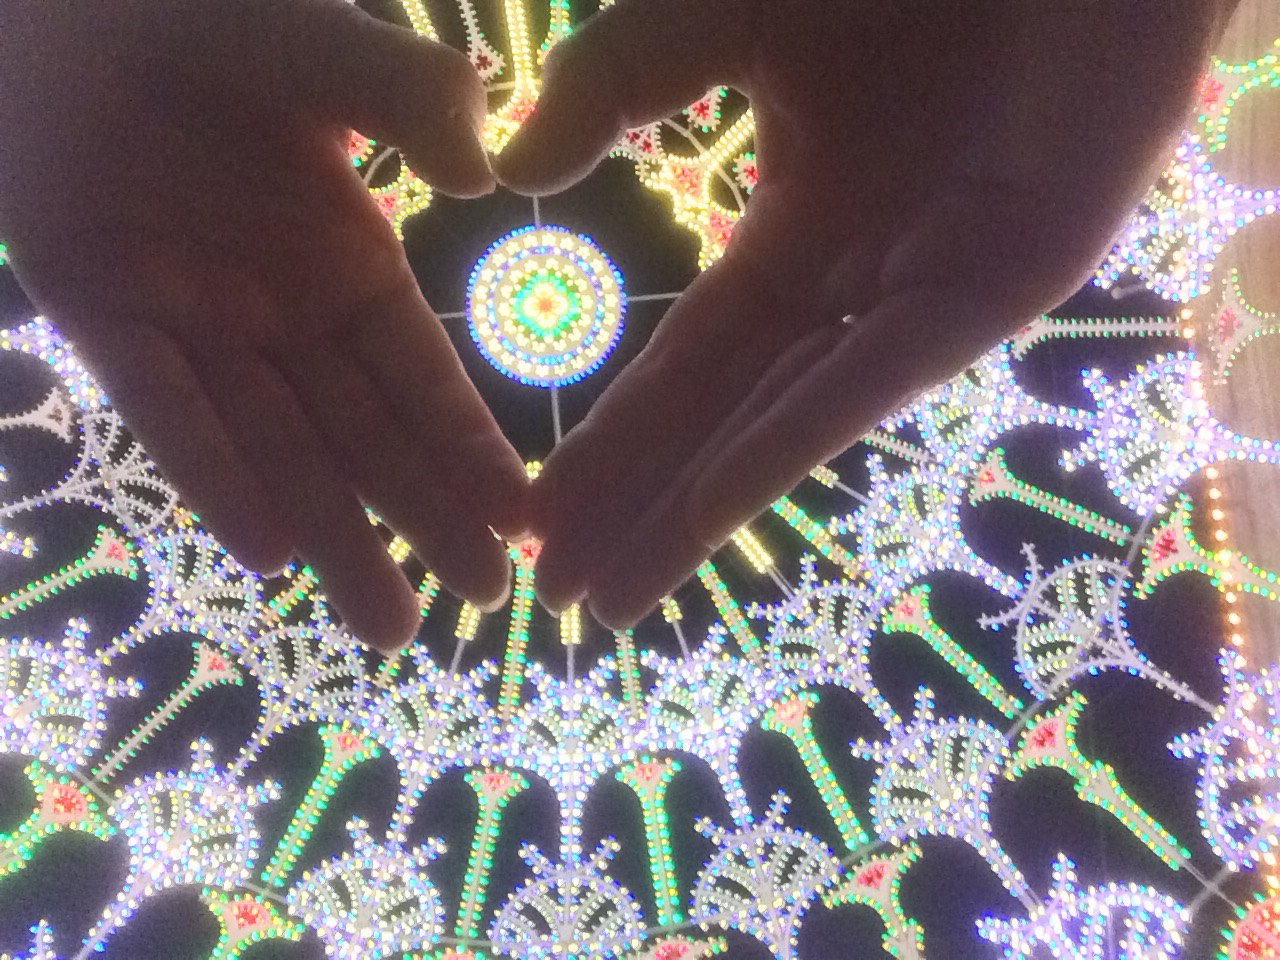 Purple and yellow patterned lights from below, with hands making a heart shape